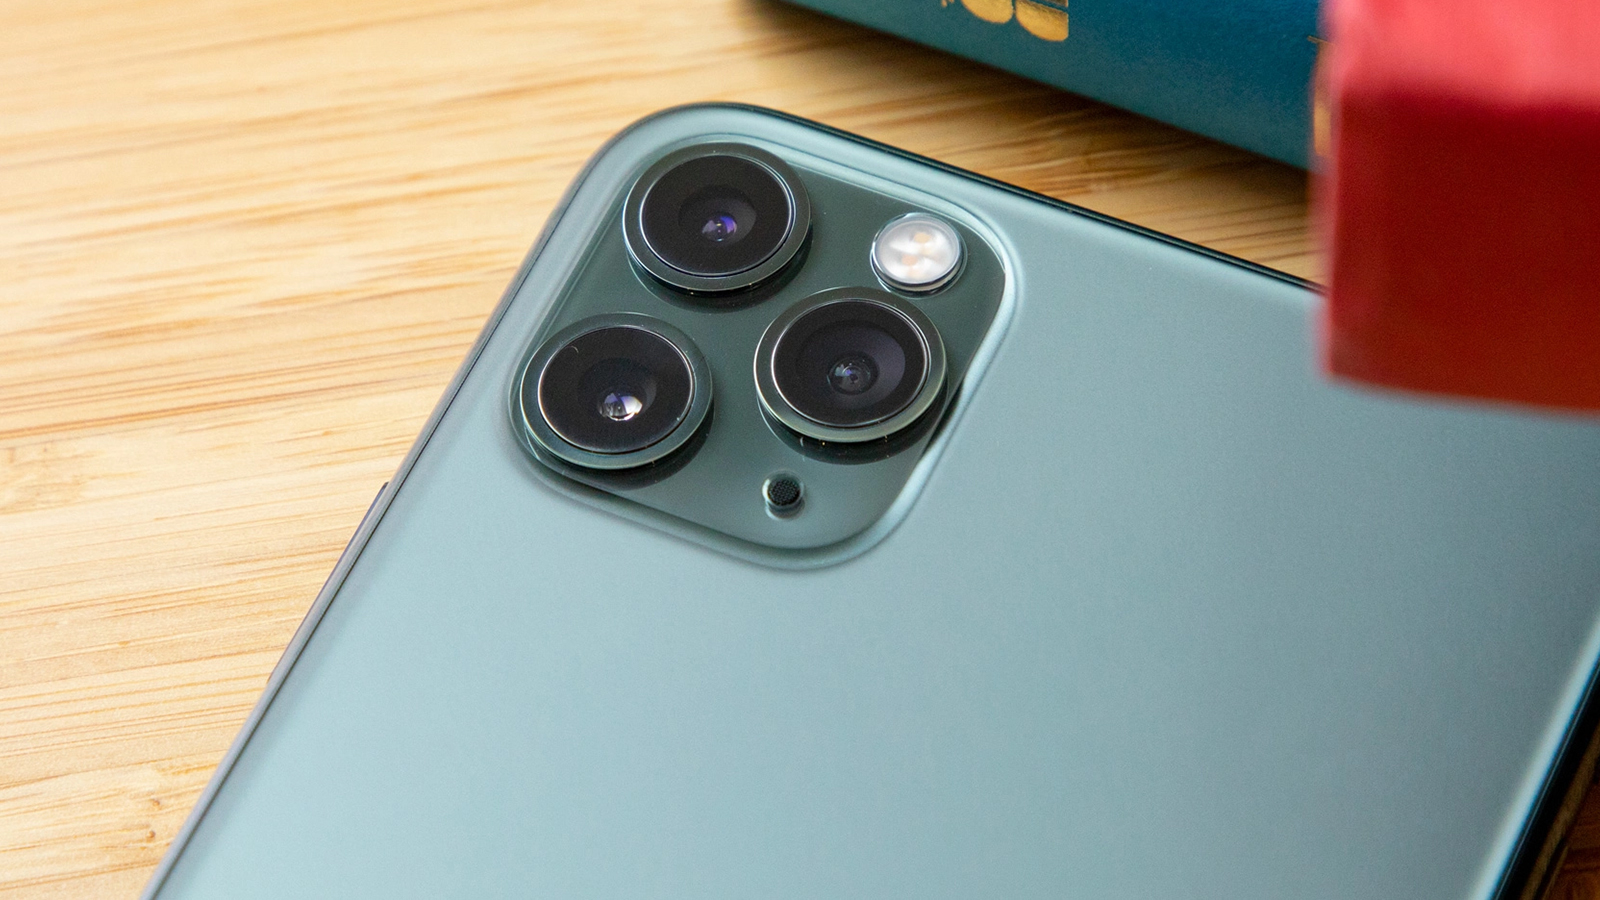 iPhone 13 camera specs leaked and could be even better than the iPhone 12